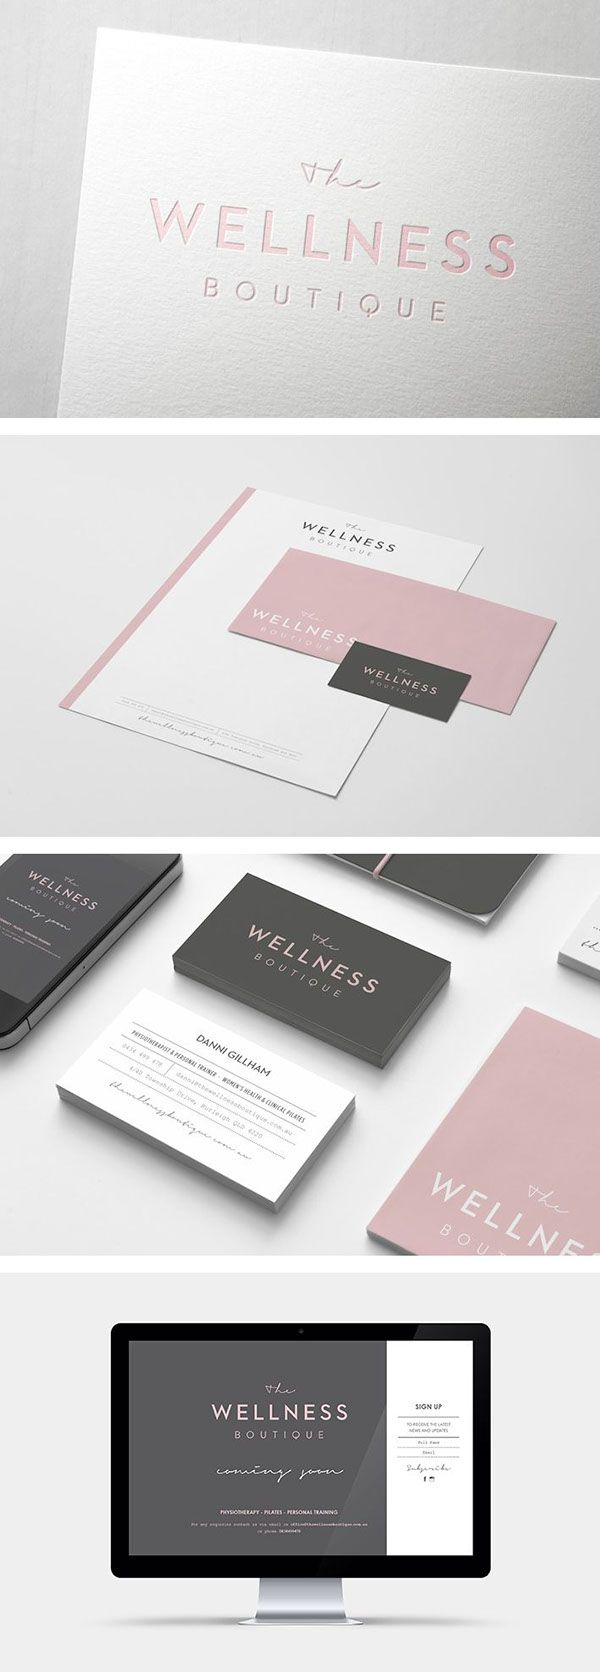 The Wellness Boutique on Behance